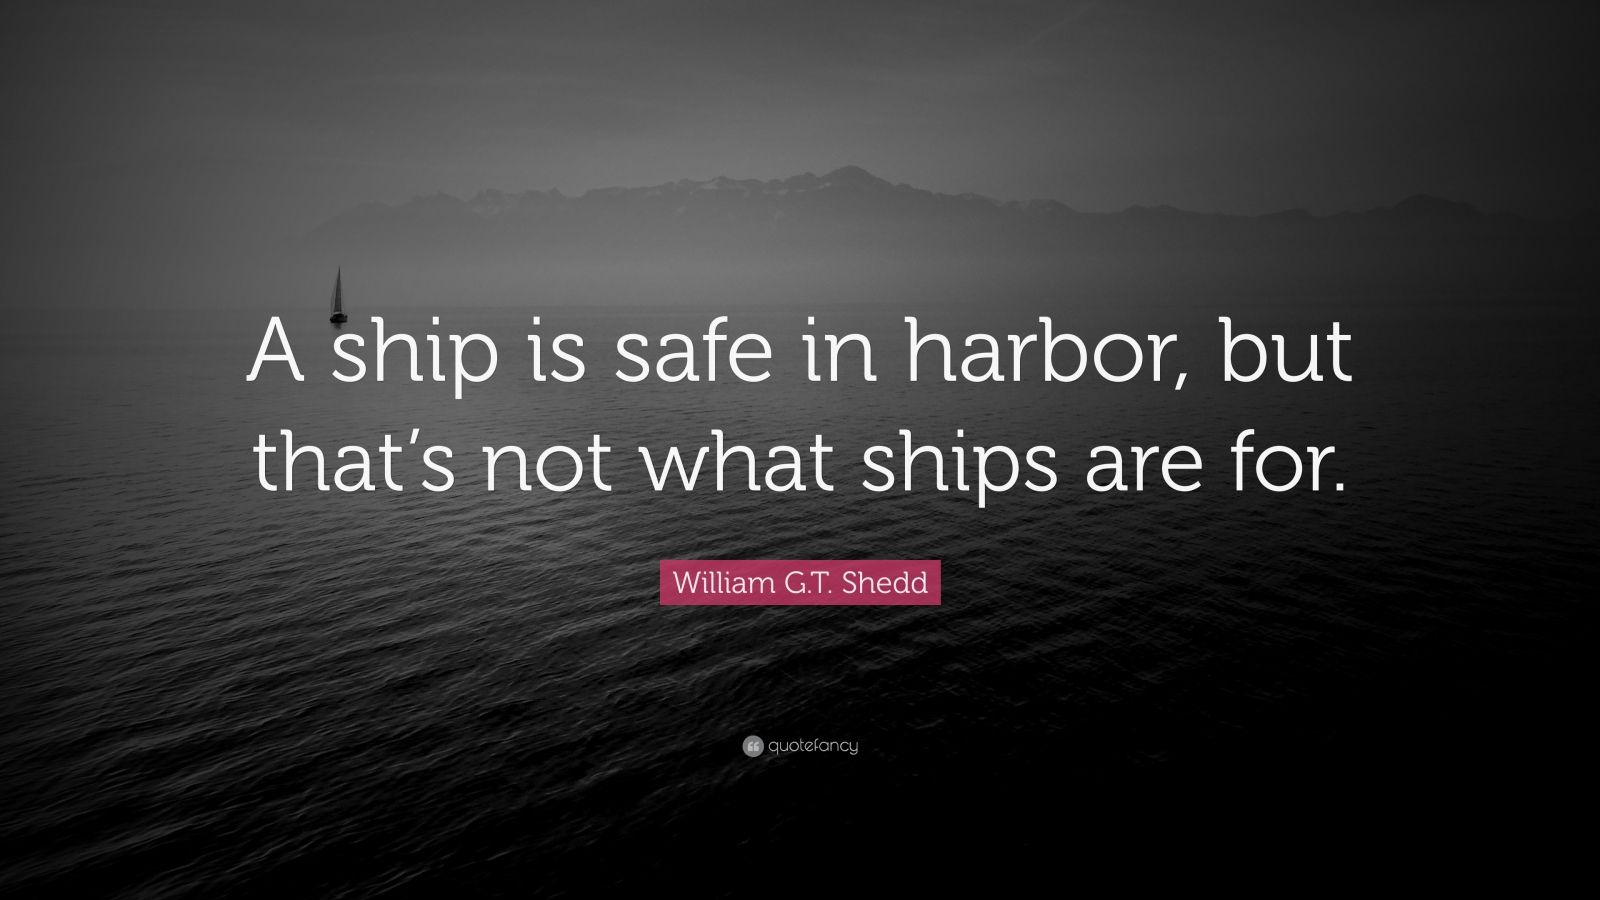 Conor Mcgregor Quotes Wallpapers William G T Shedd Quote A Ship Is Safe In Harbor But